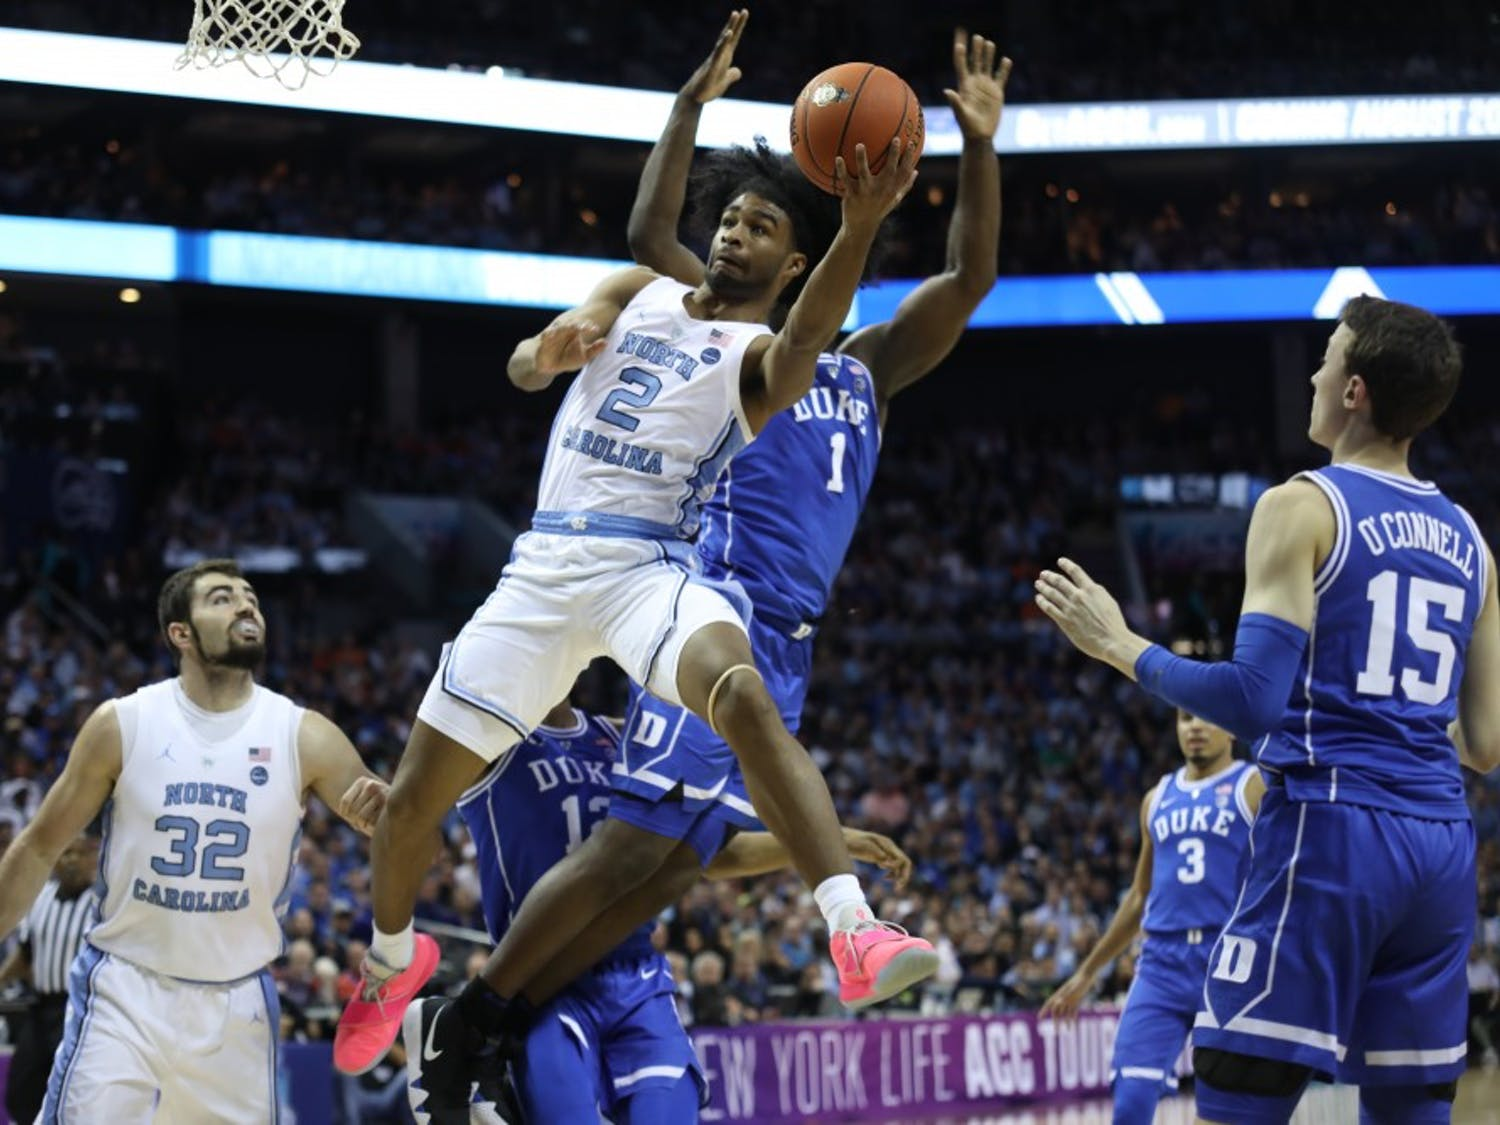 First-year guard Coby White (2) goes for a layup against Duke during the semifinals of the ACC Tournament at the Spectrum Center in Charlotte, N.C. on Friday, March 15, 2019. UNC fell to Duke 73-74.